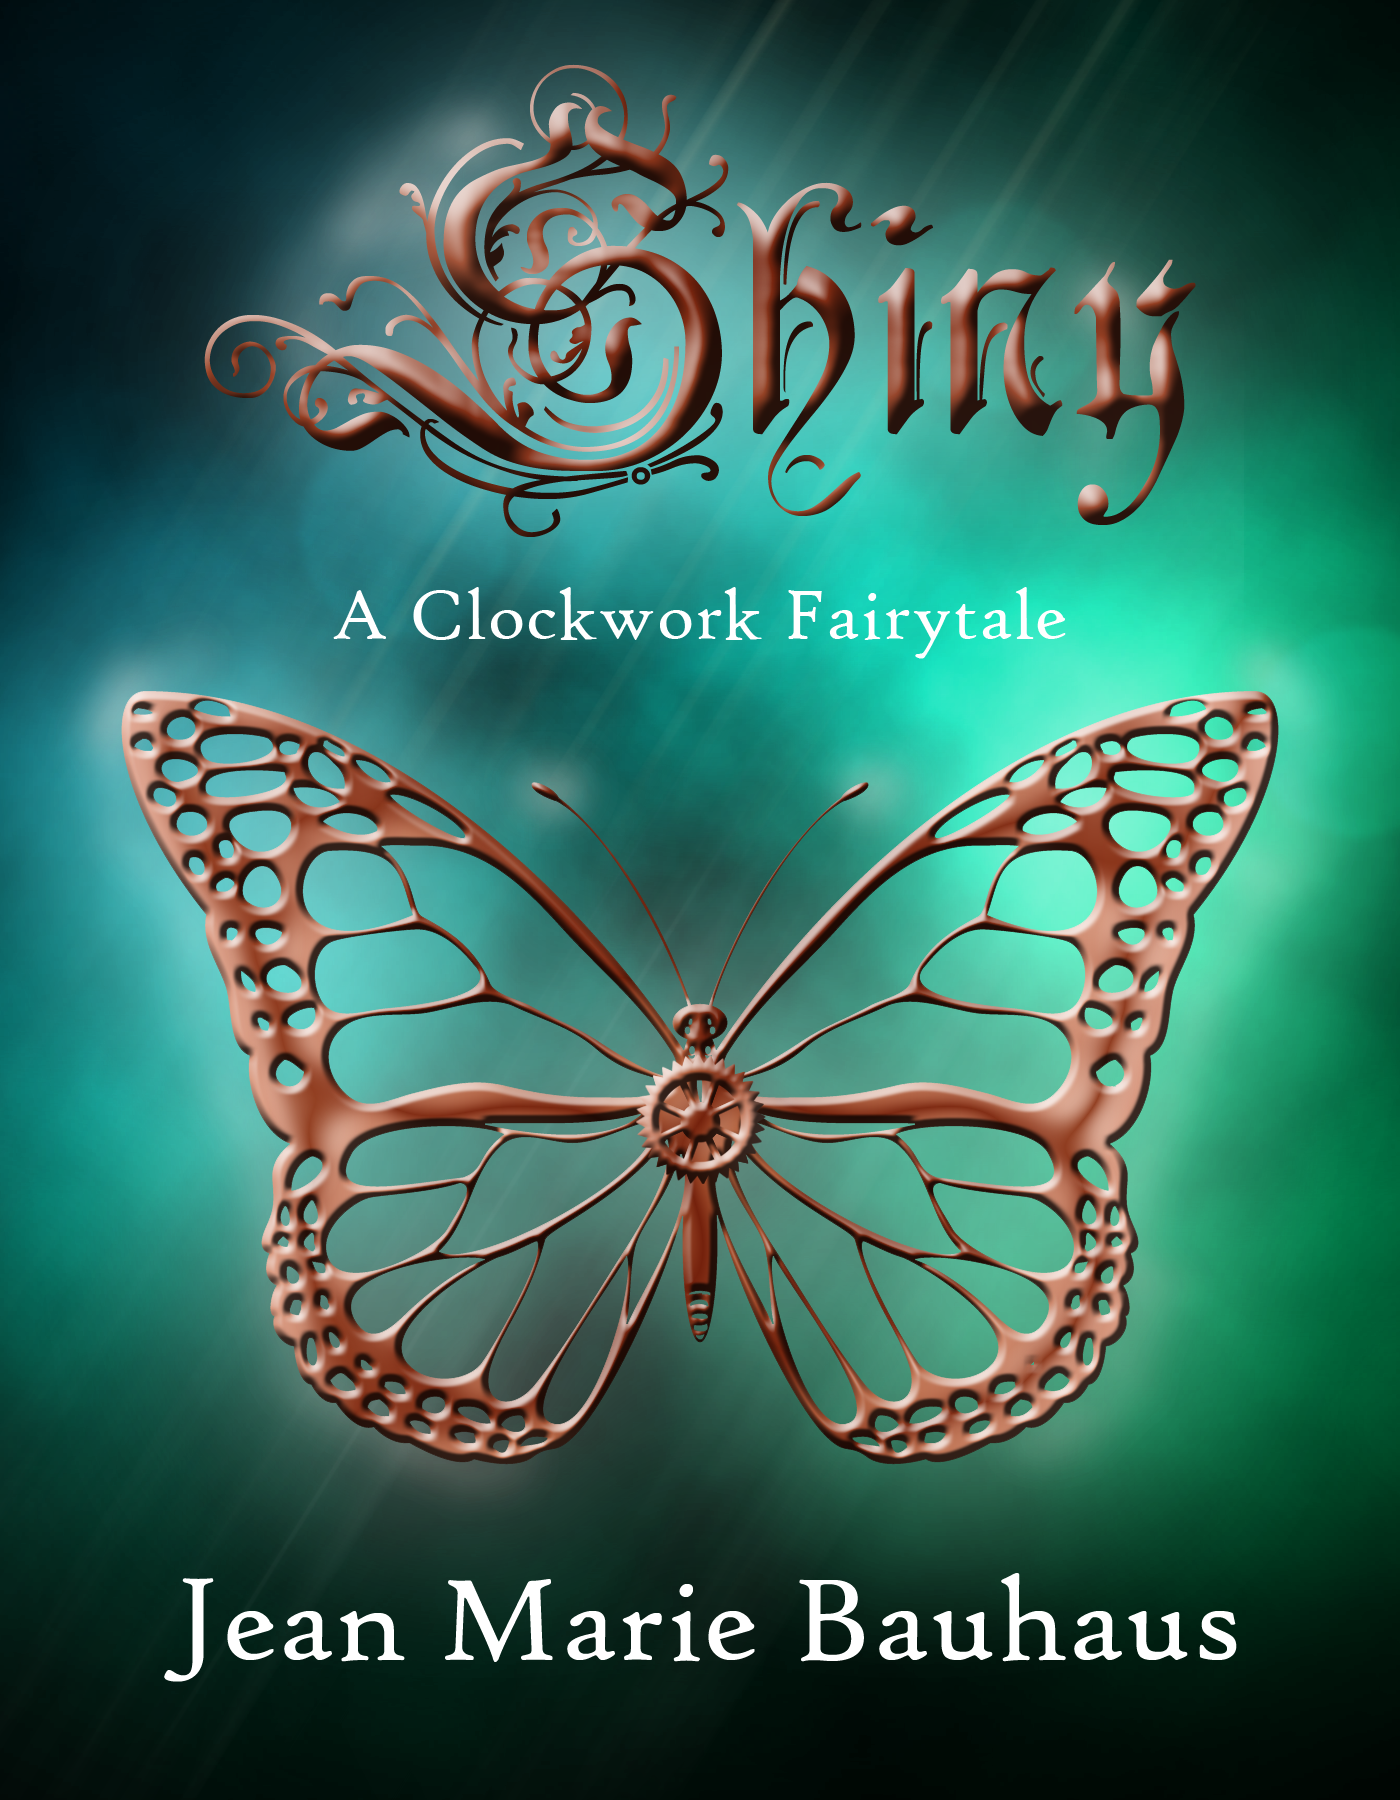 Shiny: A Clockwork Fairytale by Jean Marie Bauhaus